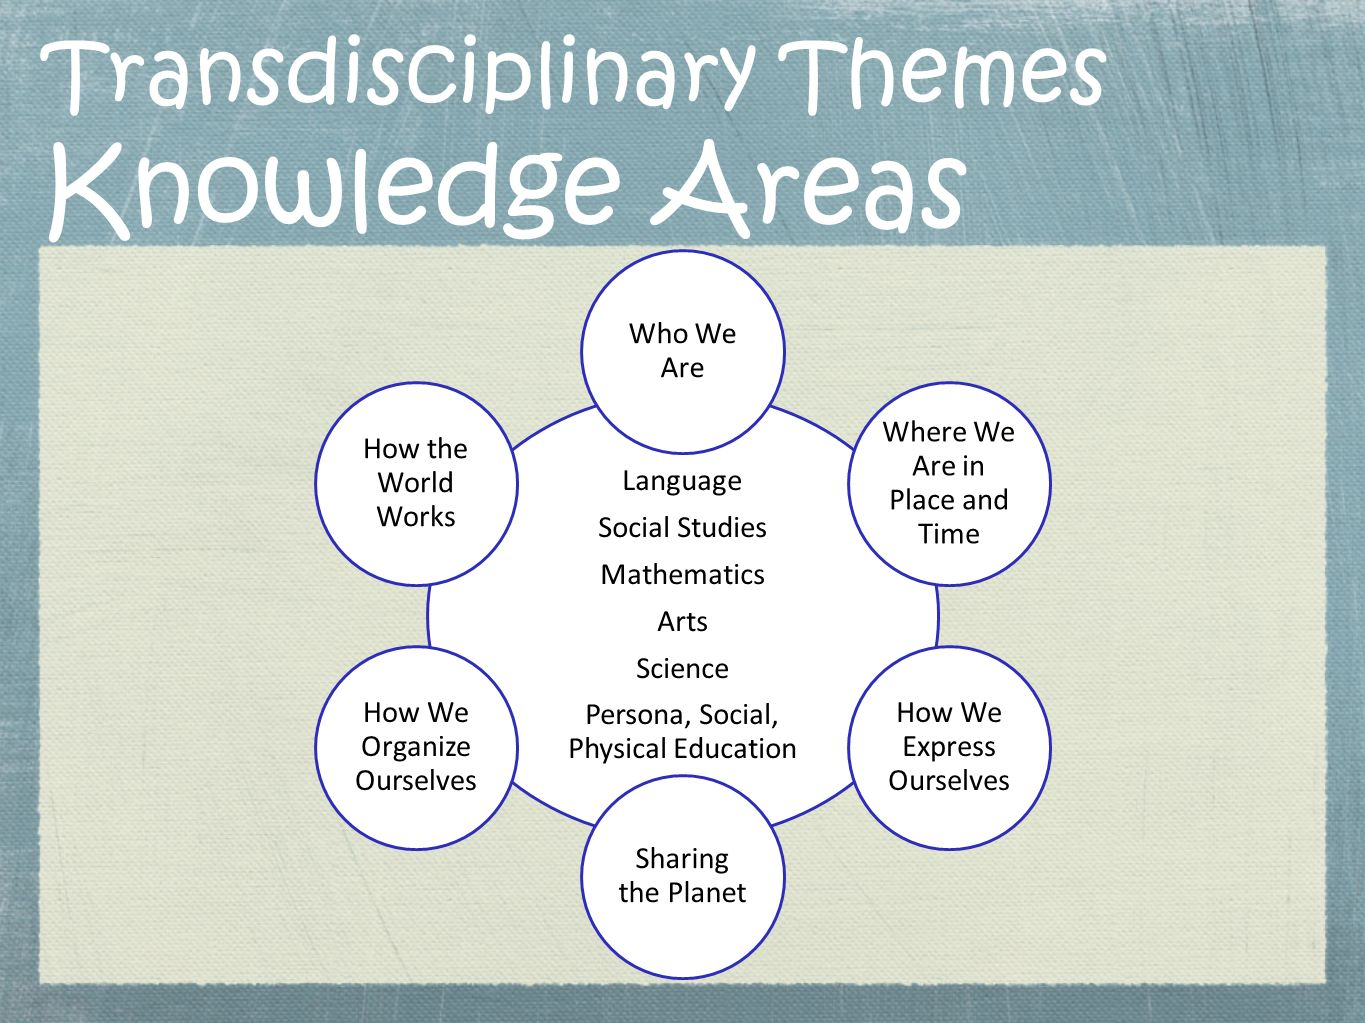 Transdisciplinary Themes Knowledge Areas